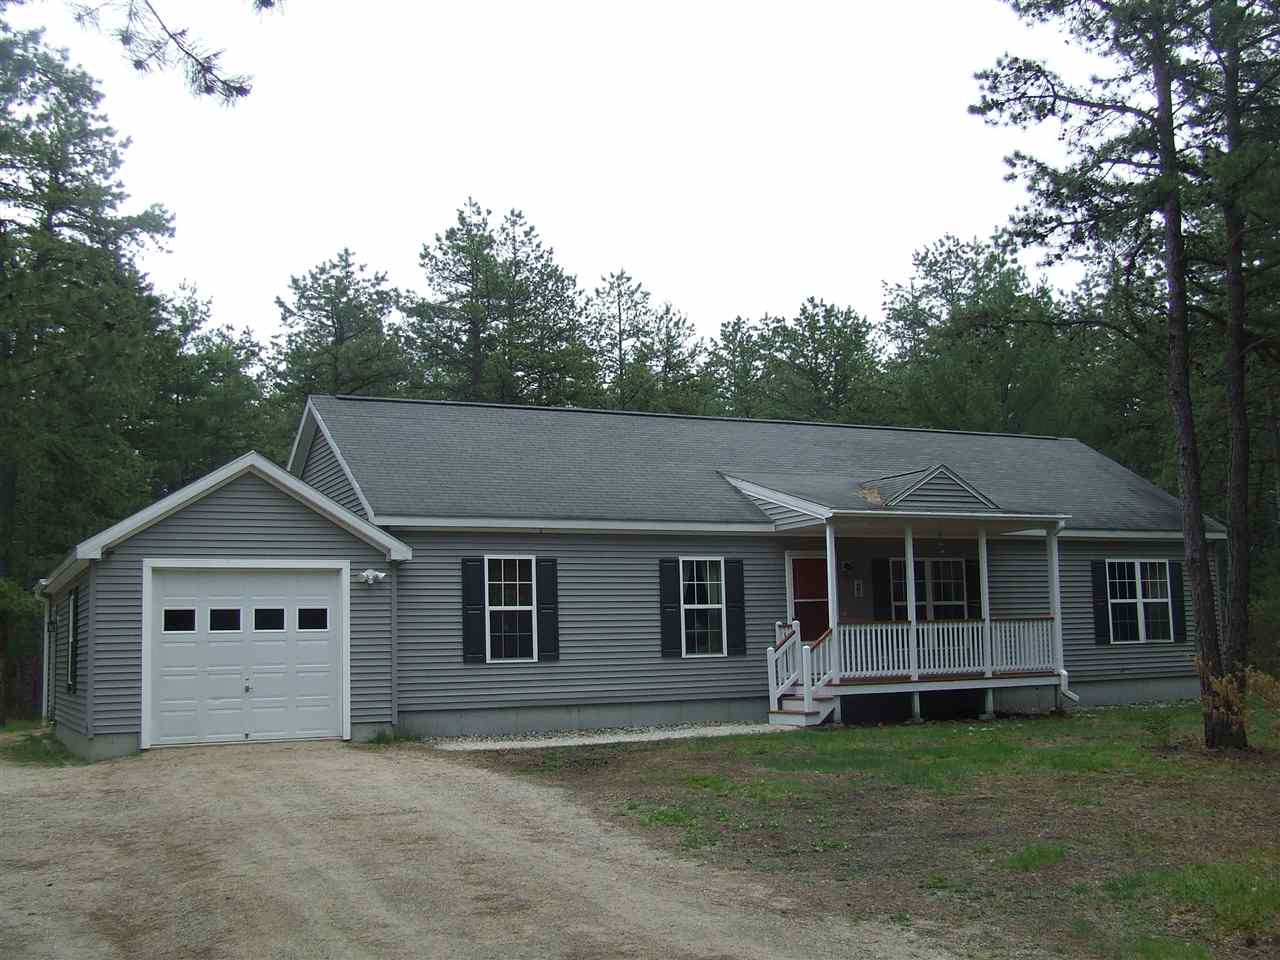 Photo of 284 Silver Pine Lane Tamworth NH 03886